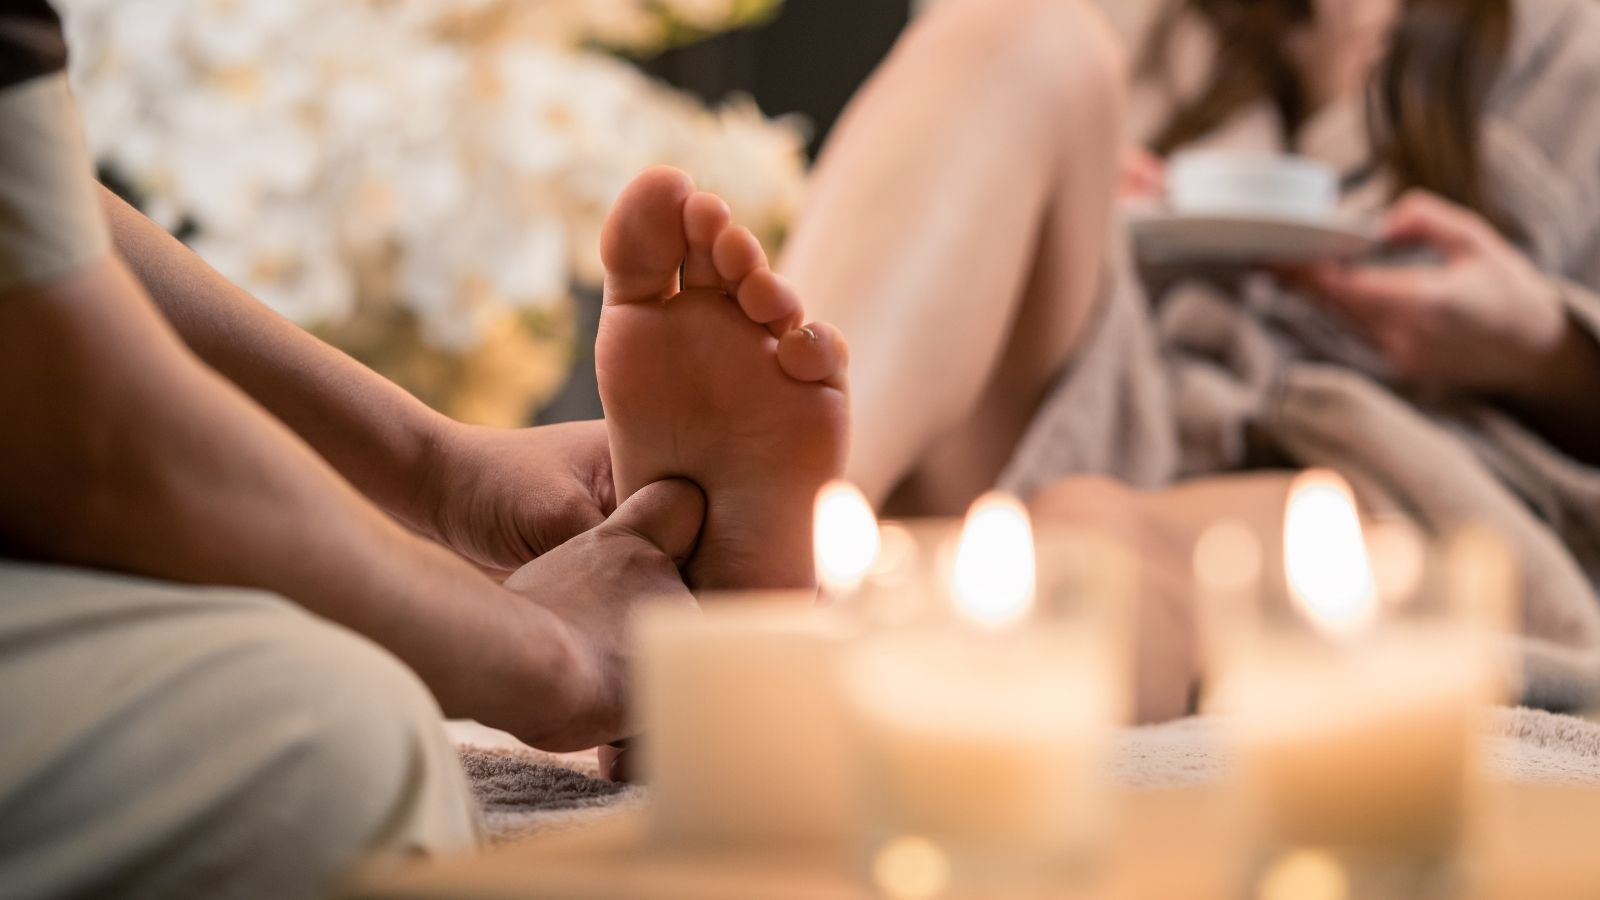 Foot Reflexology with Sarah Cooper in Boroughbridge